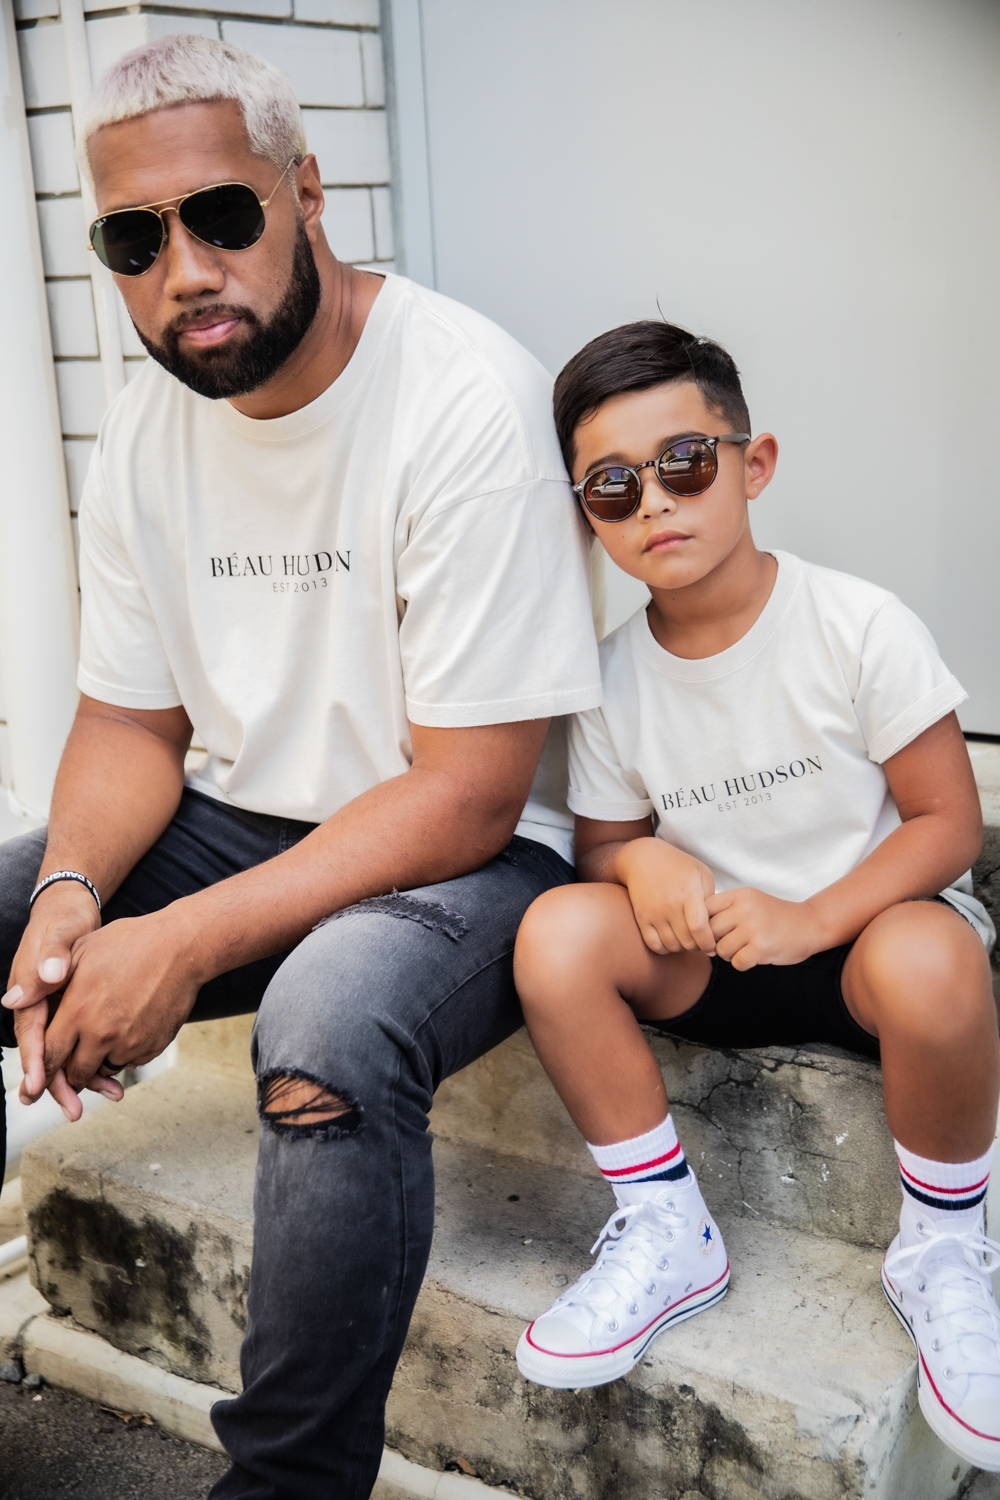 Dad and Son Twinning